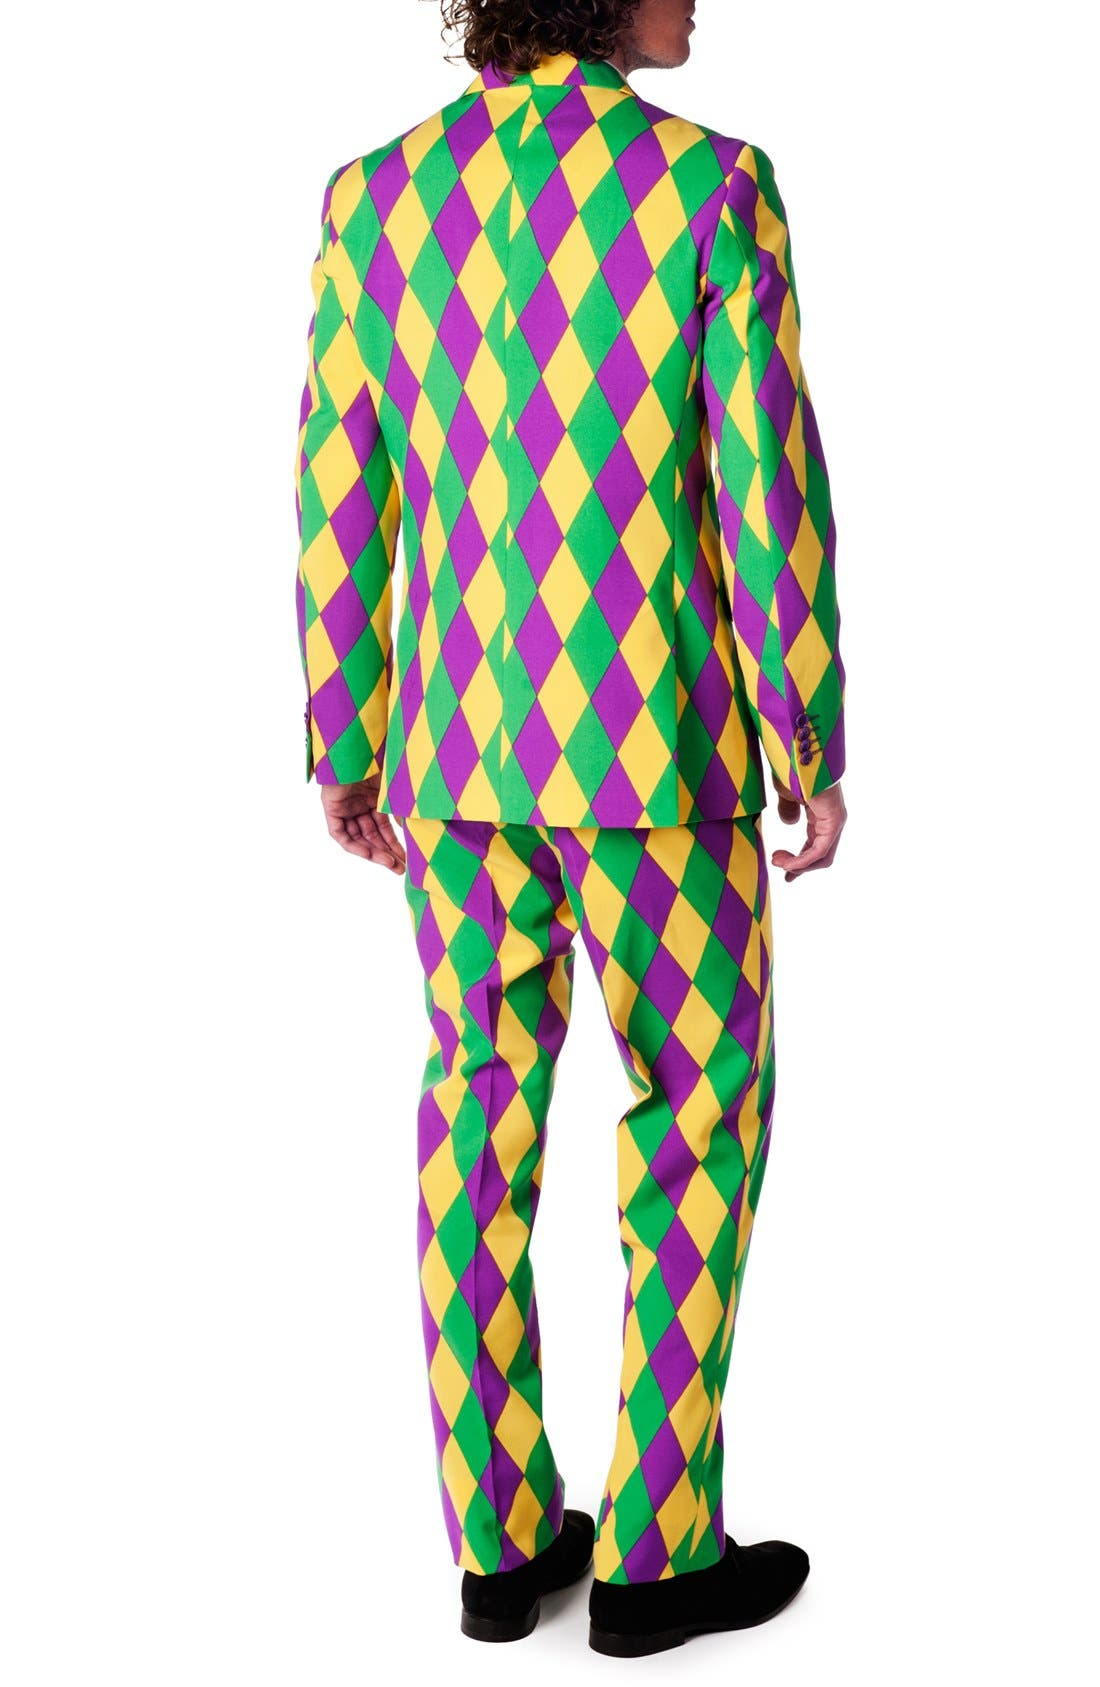 'Harleking' Trim Fit Suit with Tie,                             Alternate thumbnail 6, color,                             Green/ Purple/ Yellow